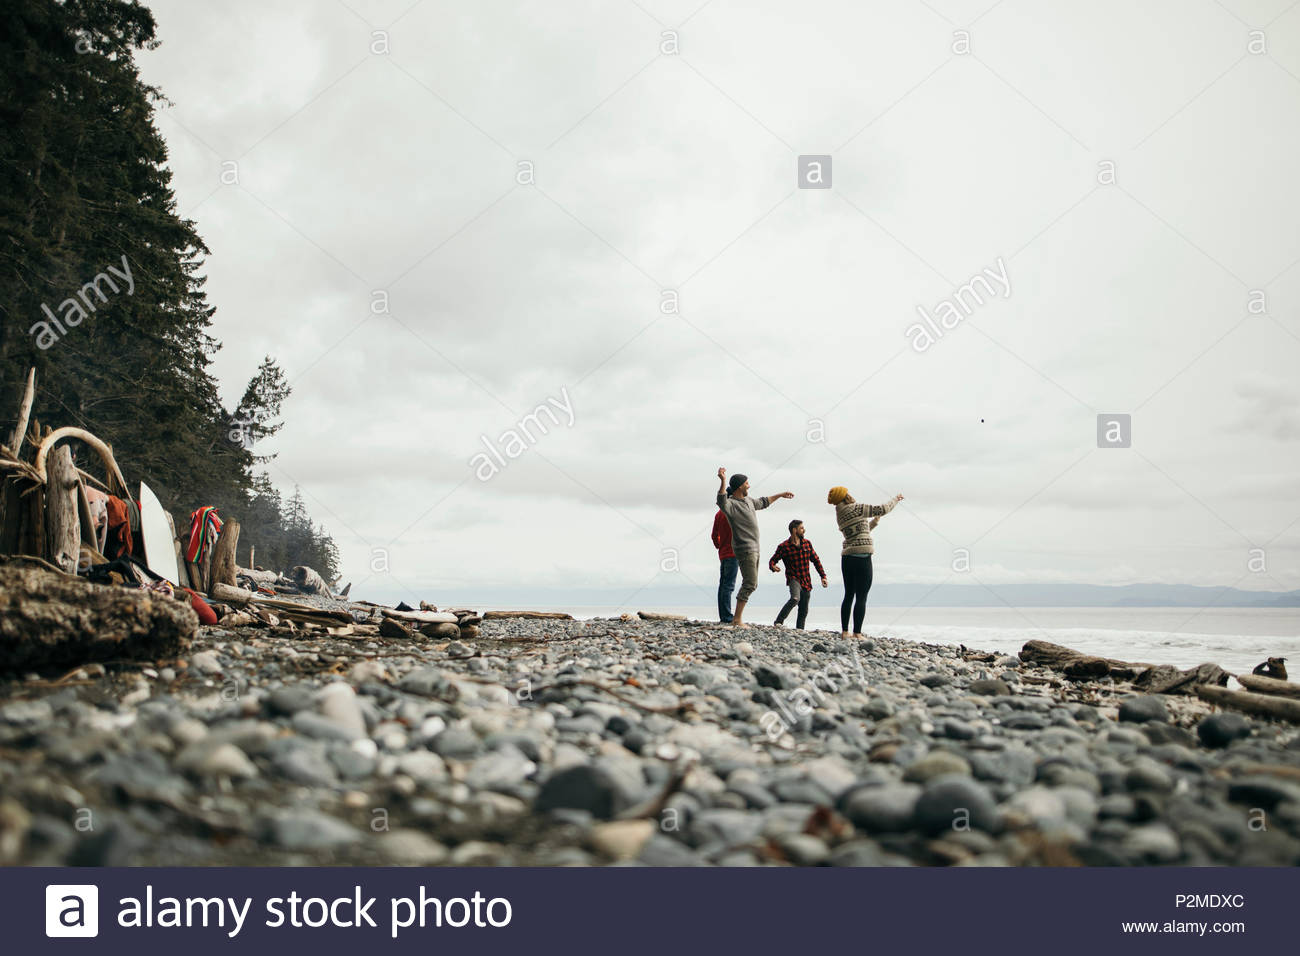 Friends throwing rocks on rugged beach - Stock Image